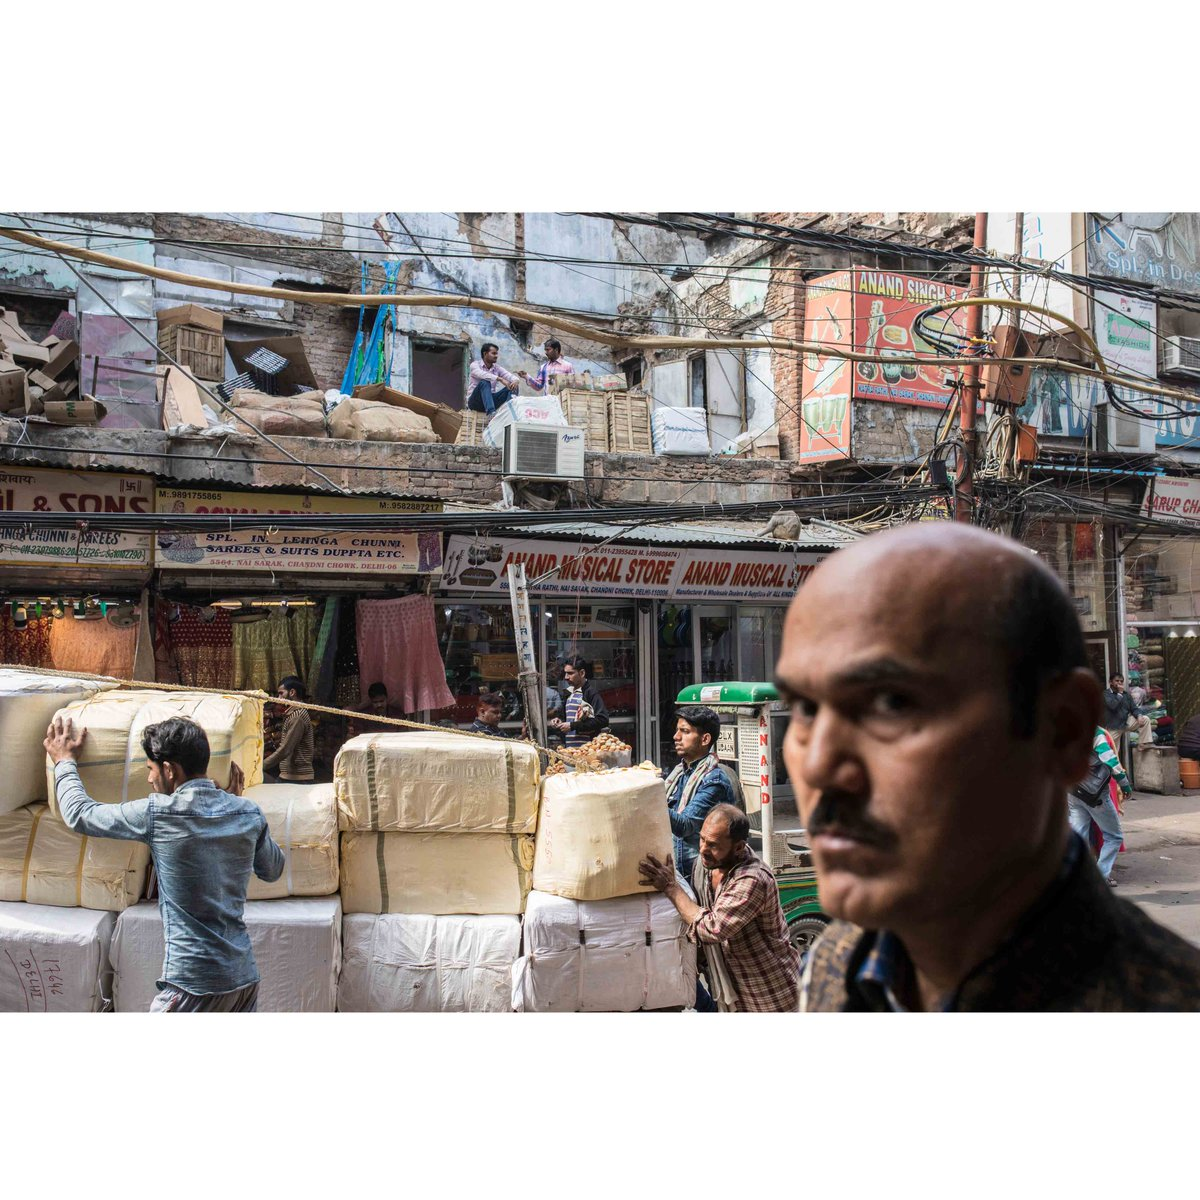 """""""In the mood for India""""  Photo essay : © Laurent Hazgui / @DivergencePhoto  2019  Triangle of commerce  #india #inde #newdelhi #man #workers #chandni #chandnichowk #market #marché #commerce  #photography #streetphotography #documentaire #photojournalisme #photojournalism"""